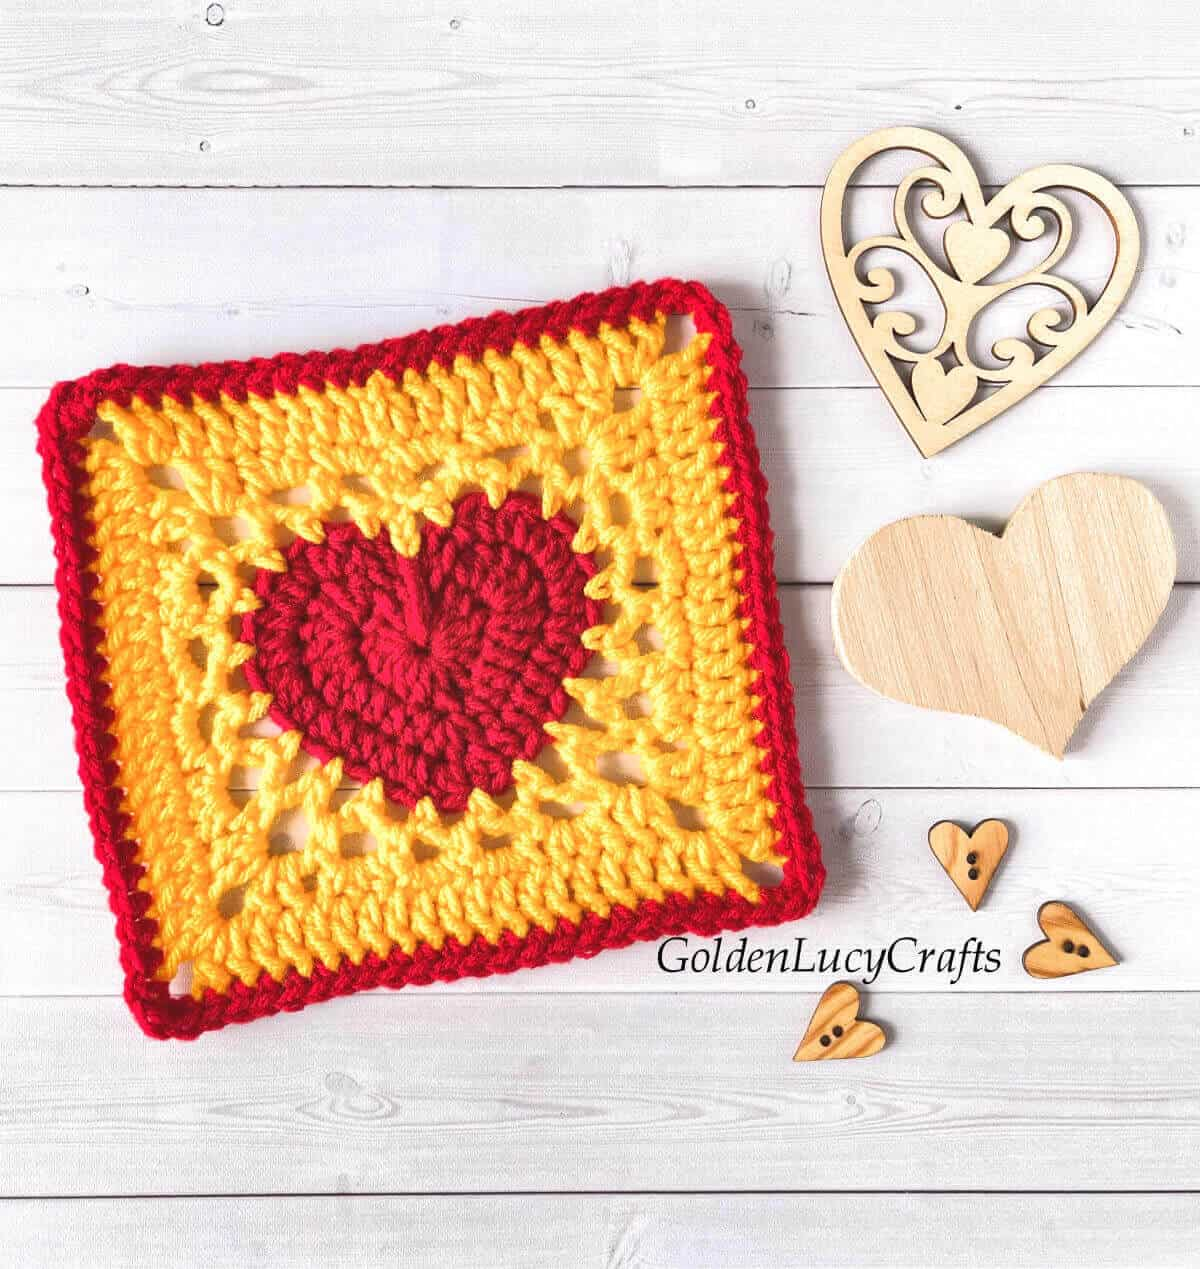 Red and yellow crocheted heart granny square, wooden hearts next to it.